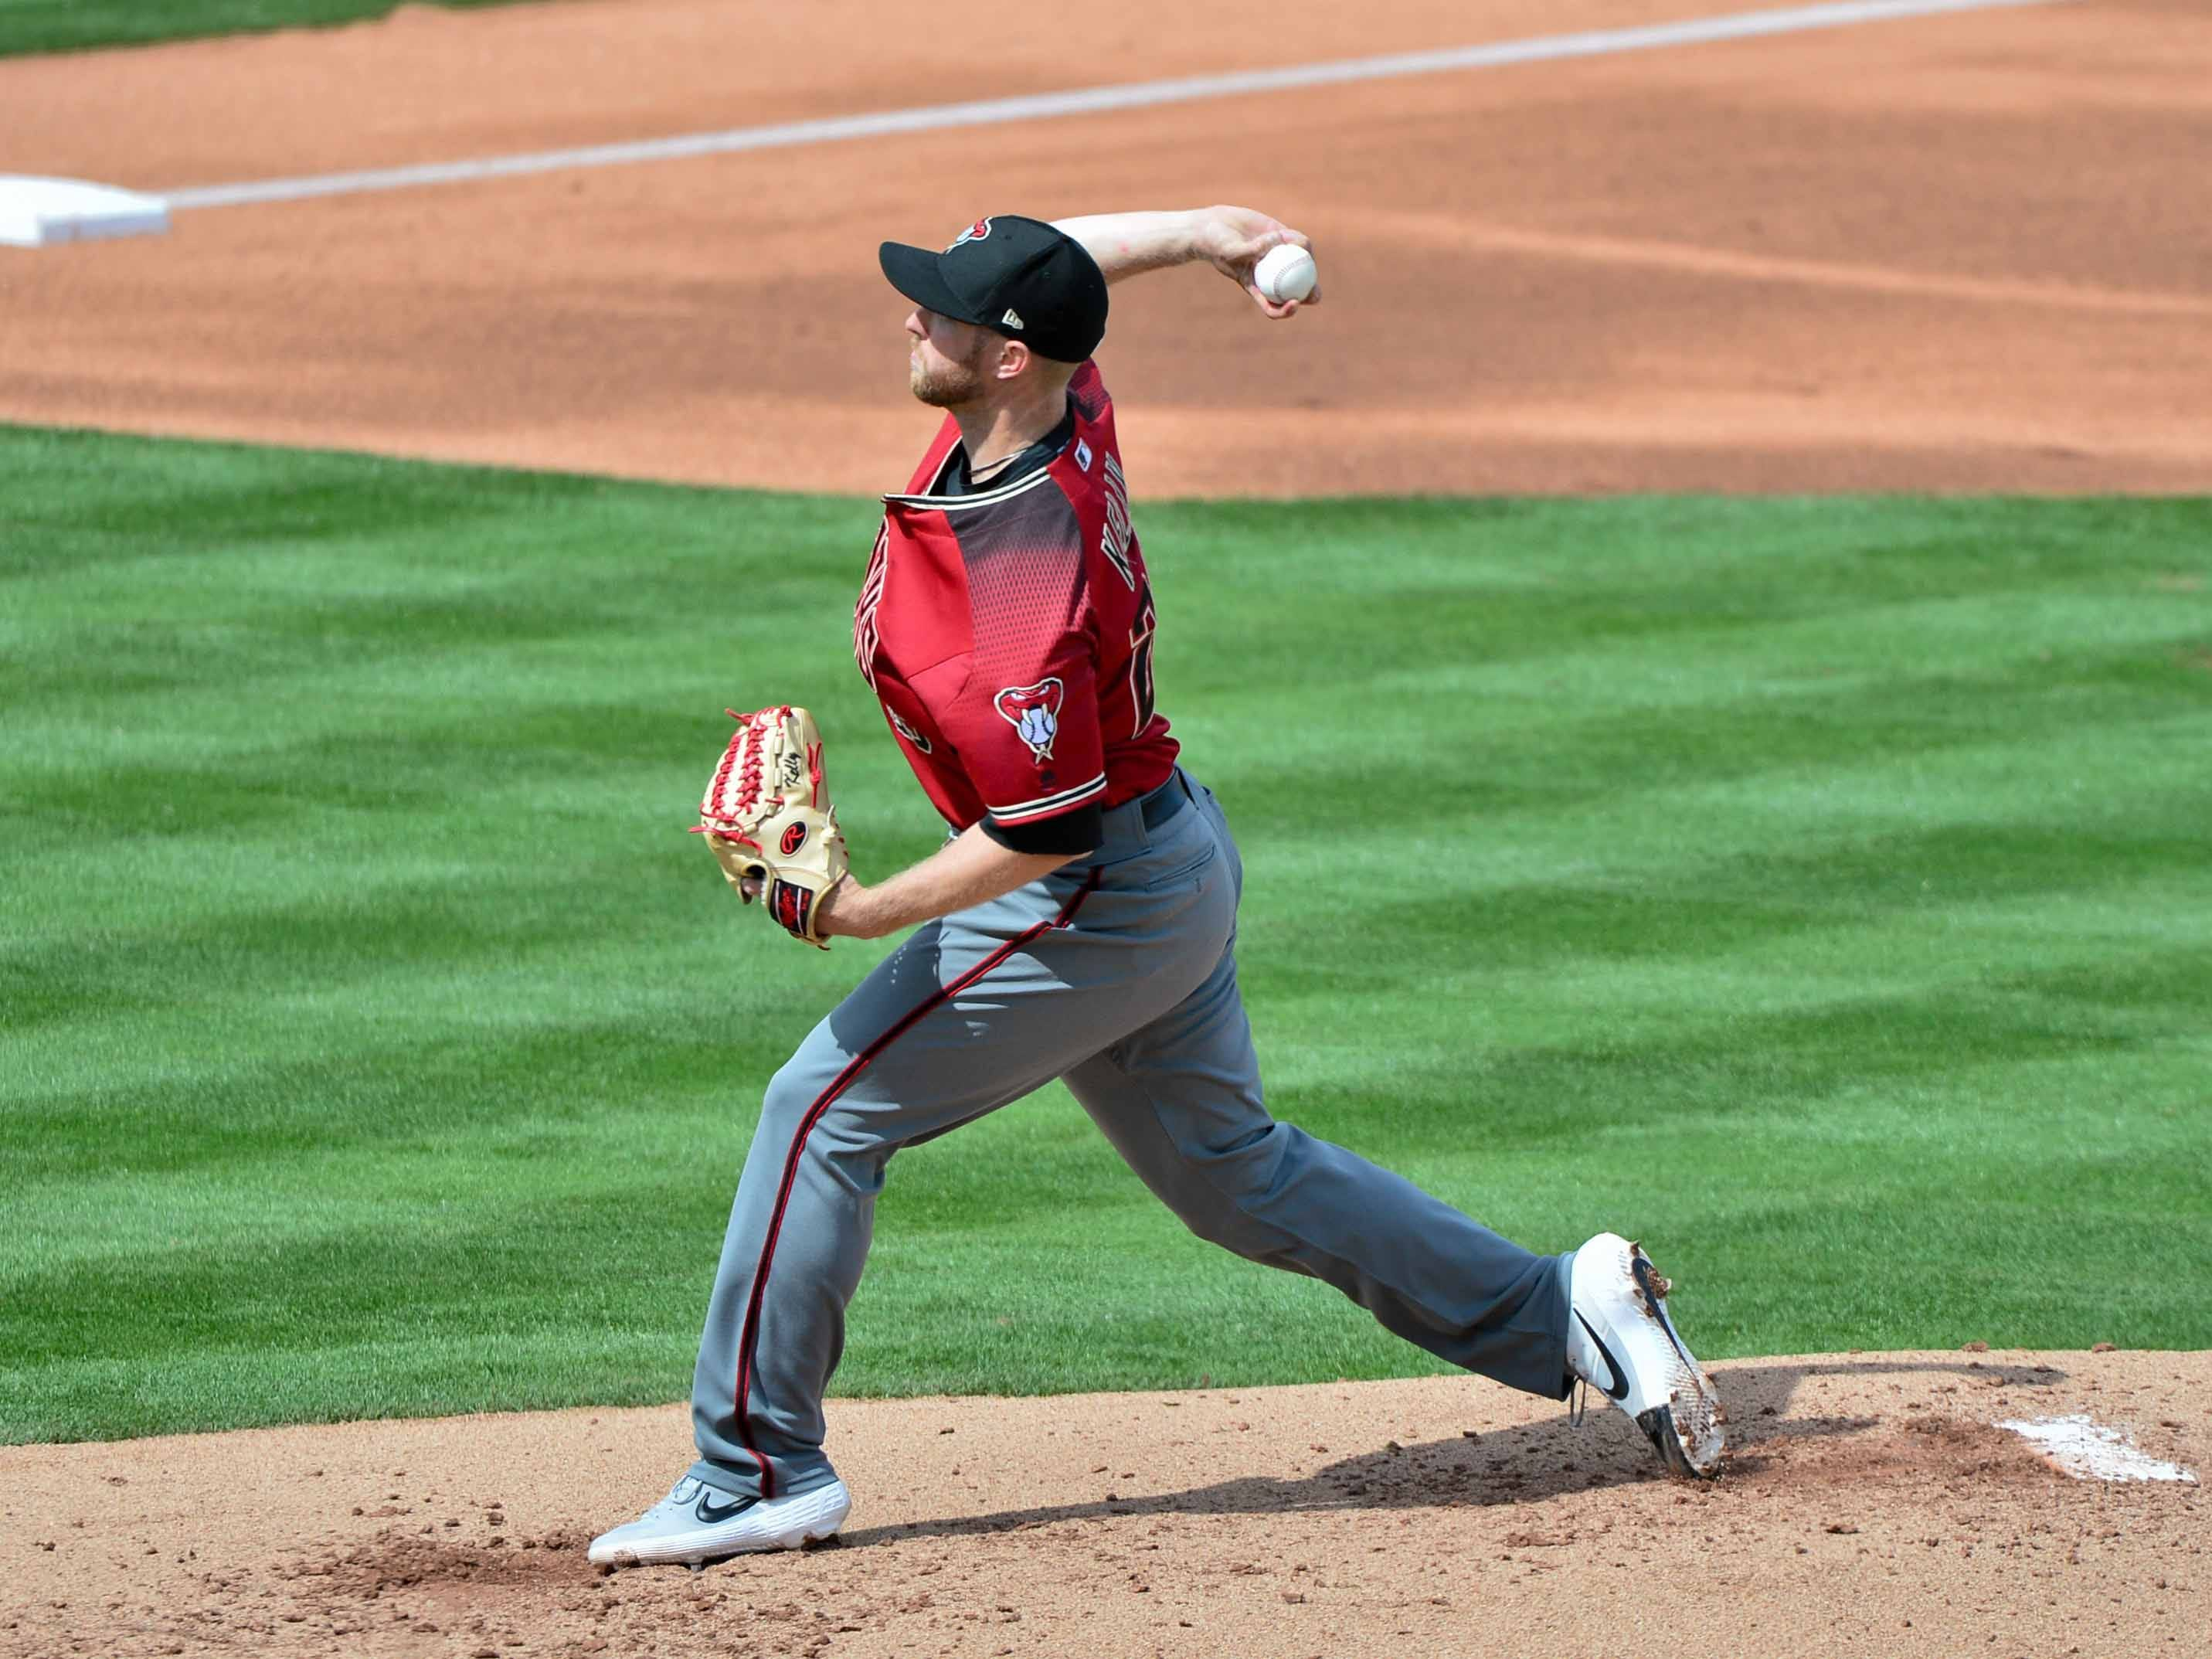 Mar 15, 2019; Tempe, AZ, USA; Arizona Diamondbacks starting pitcher Merrill Kelly (29) throws during the third inning against the Los Angeles Angels at Tempe Diablo Stadium. Mandatory Credit: Matt Kartozian-USA TODAY Sports